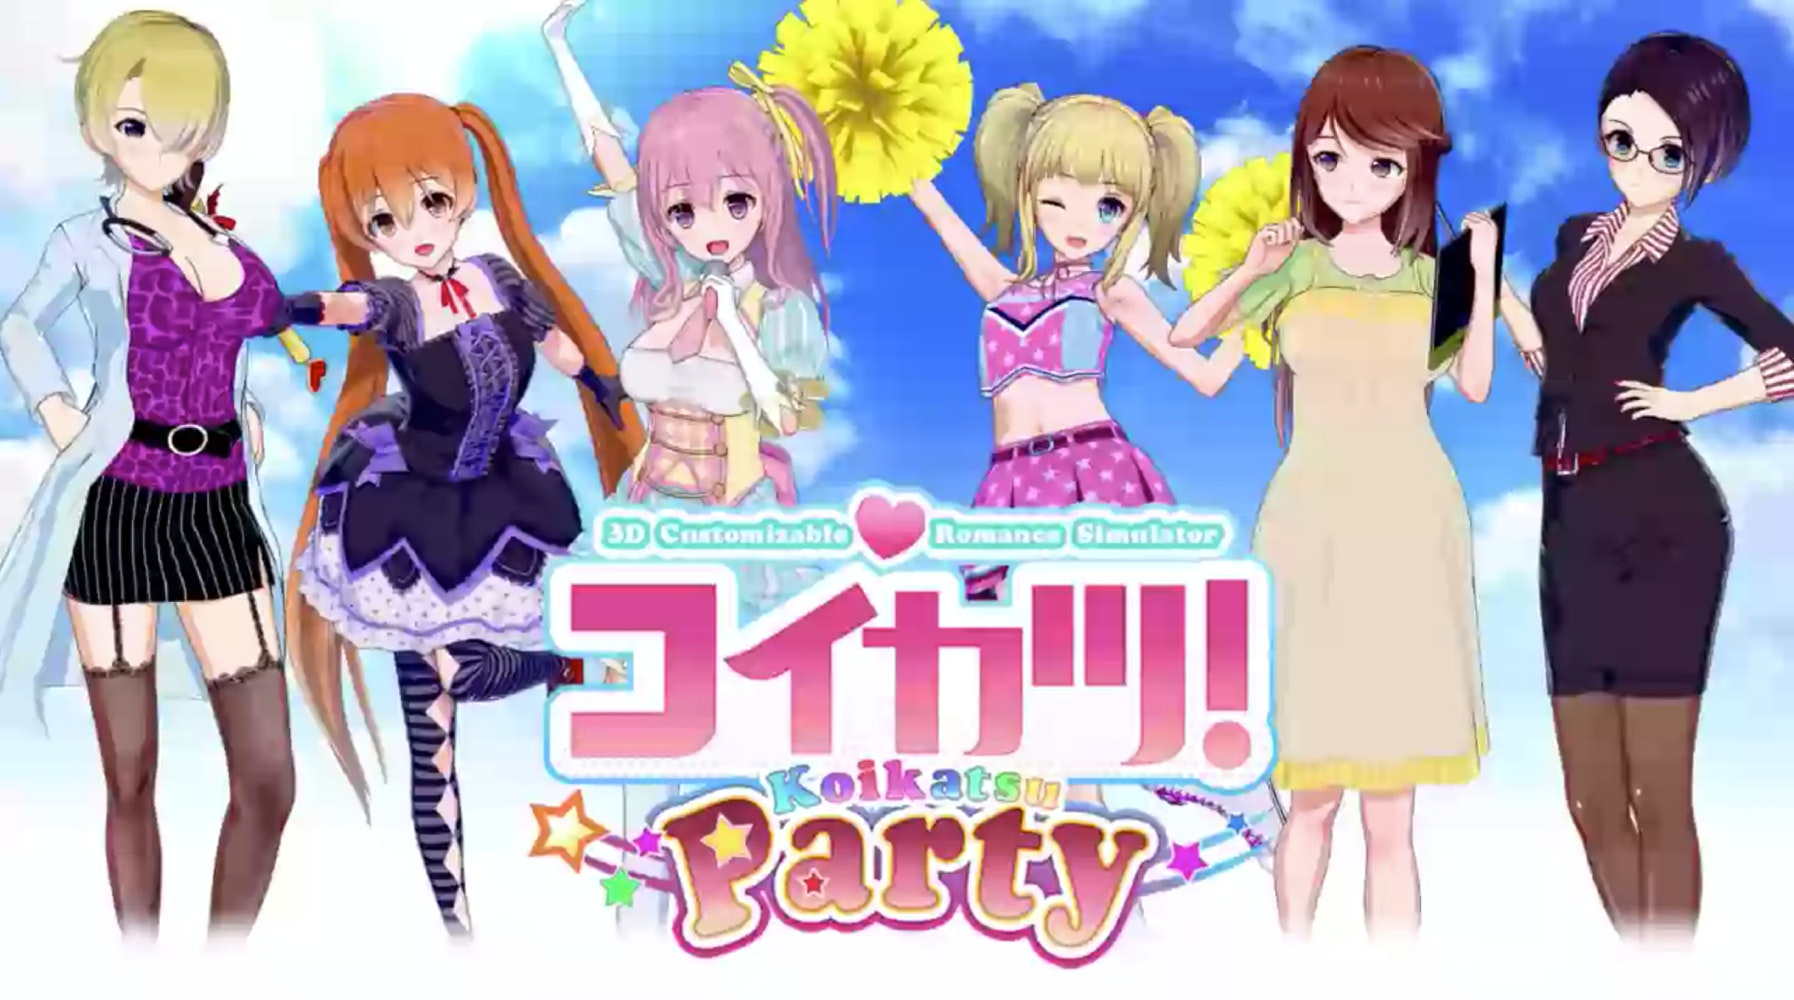 A promotional image for Koikatsu Party with six anime girls.